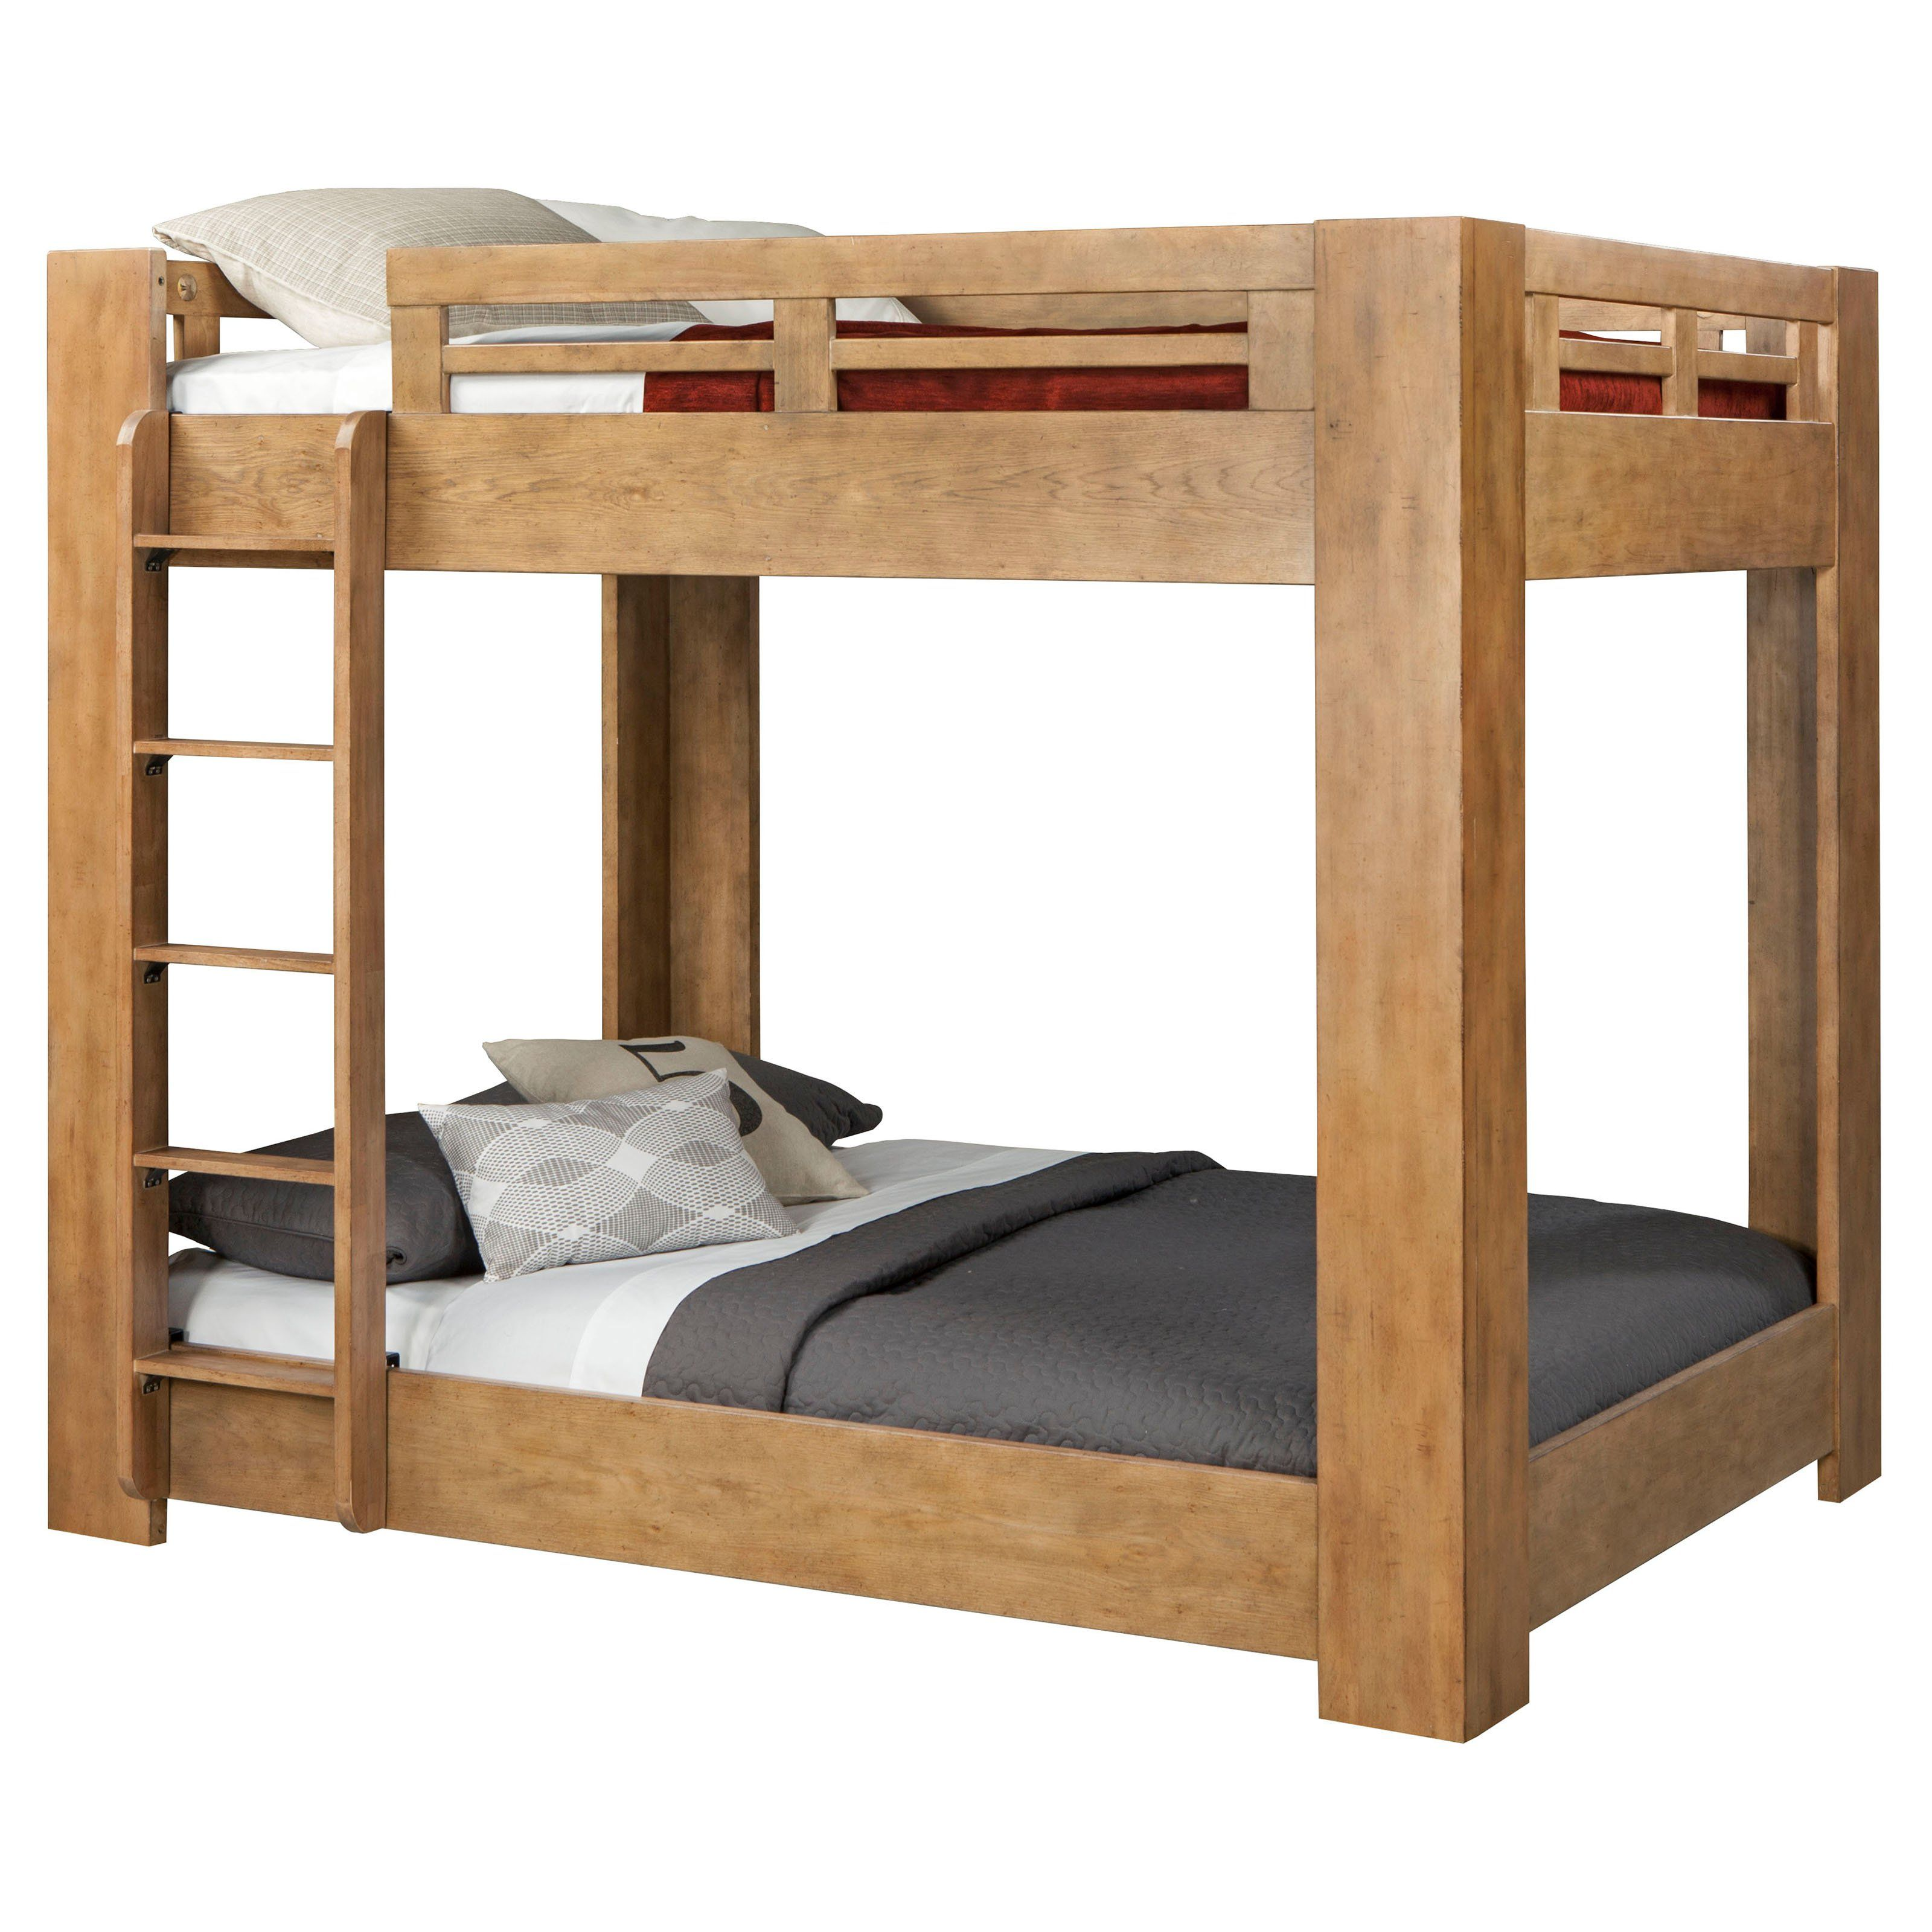 American Woodcrafters Natural Elements Full Over Full Bunk Bed